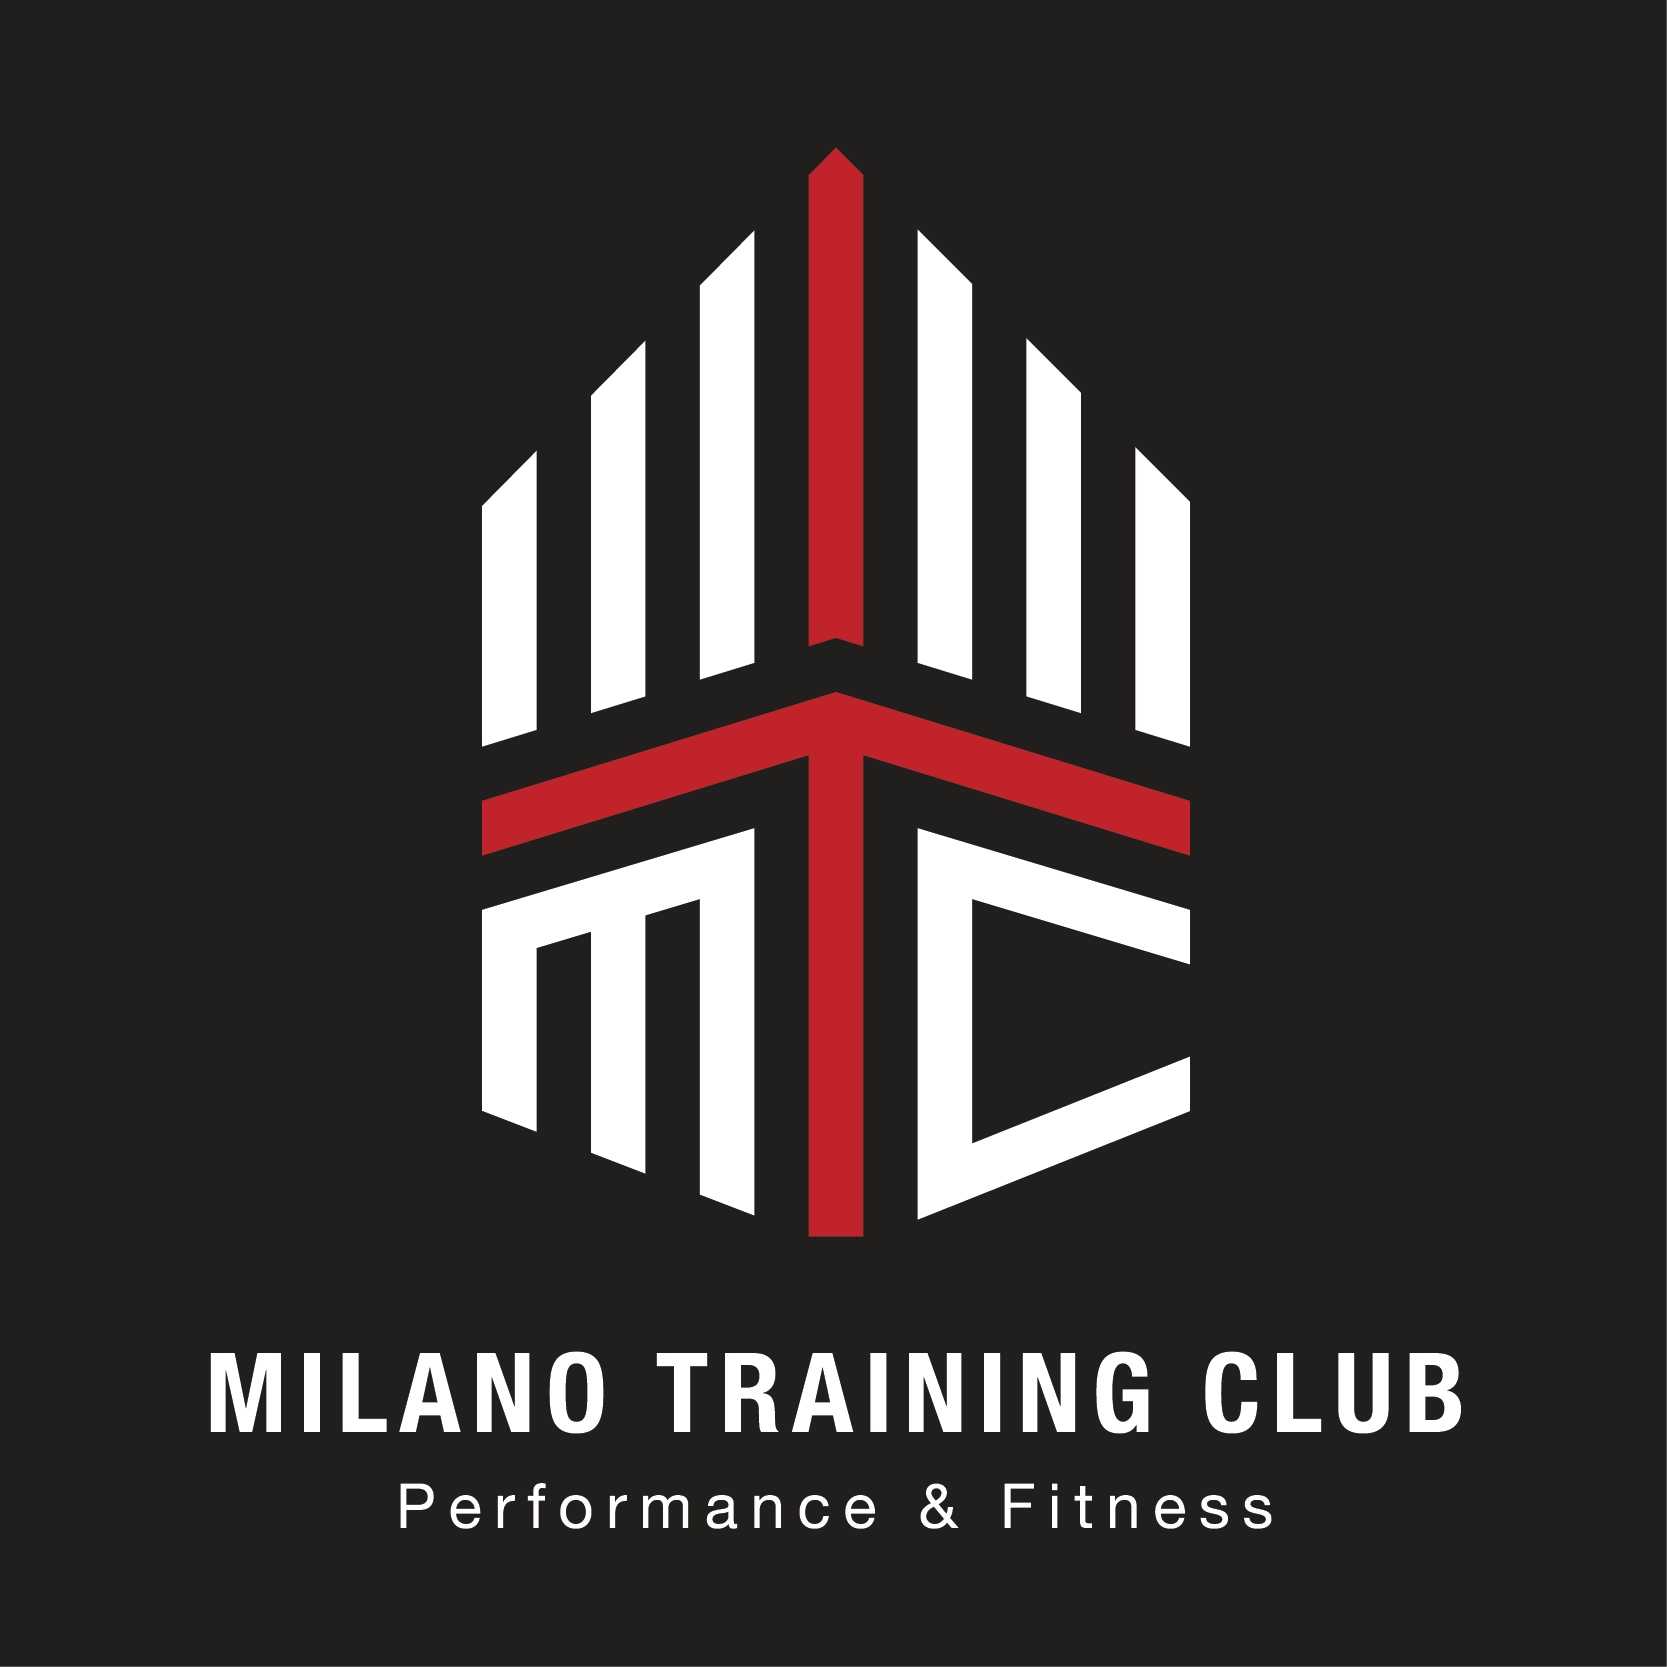 MILANO TRAINING CLUB S.S.D.